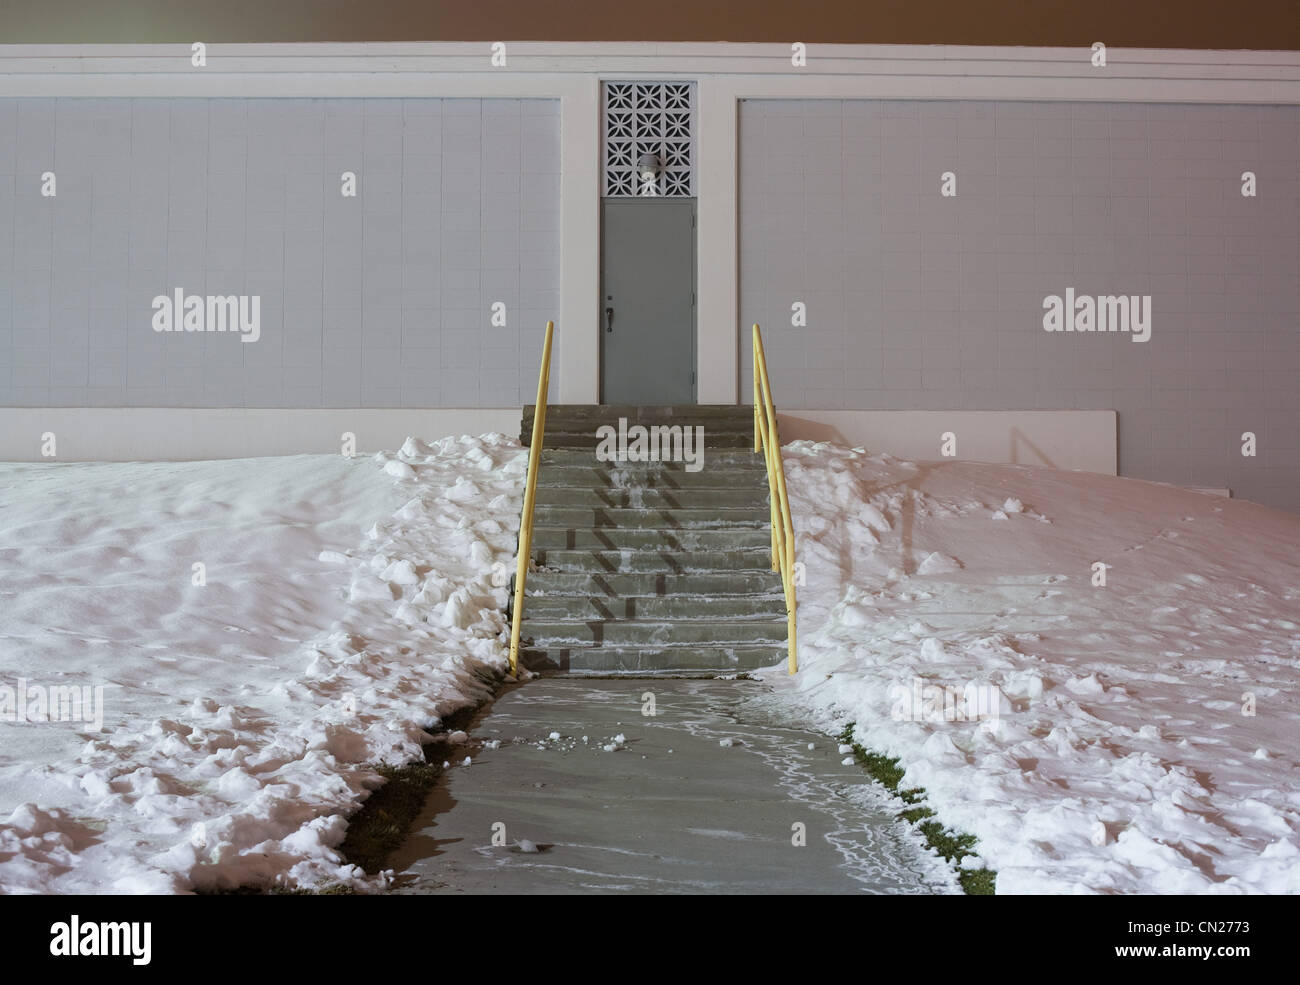 Steps and building exterior in the snow - Stock Image